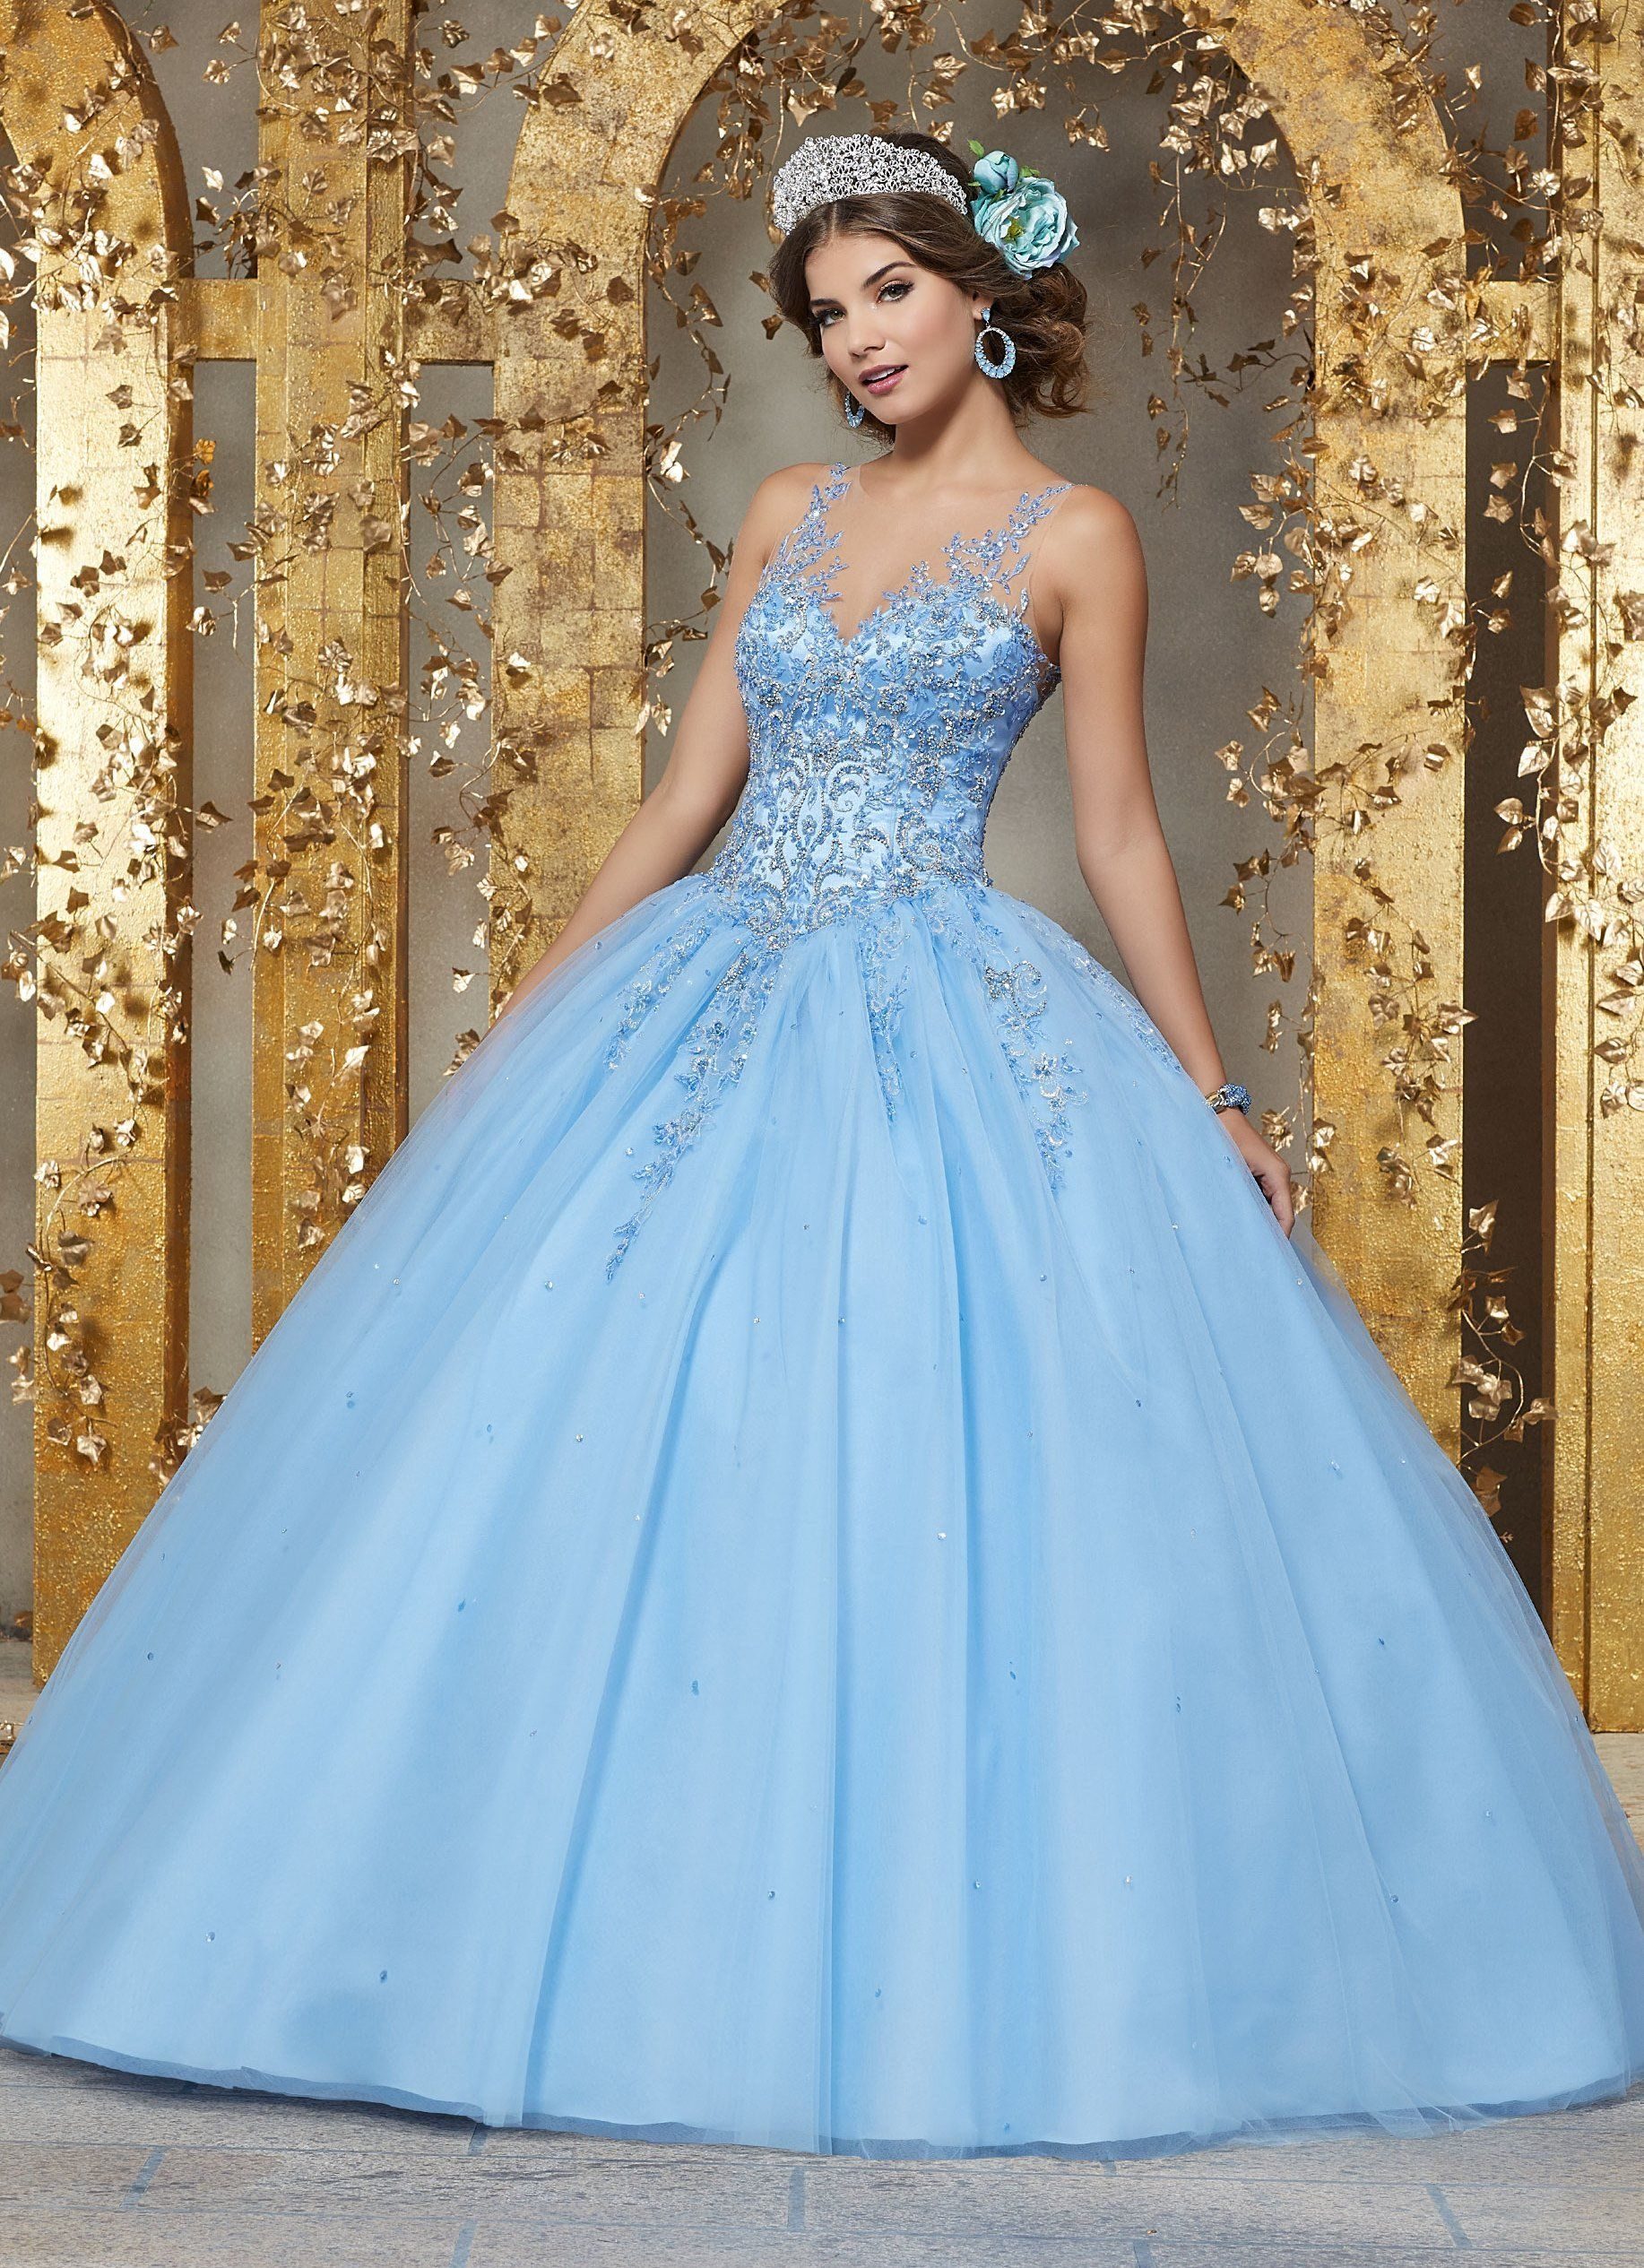 494c003c1c9 Embroidered Illusion Quinceanera Dress by Mori Lee Vizcaya 89223